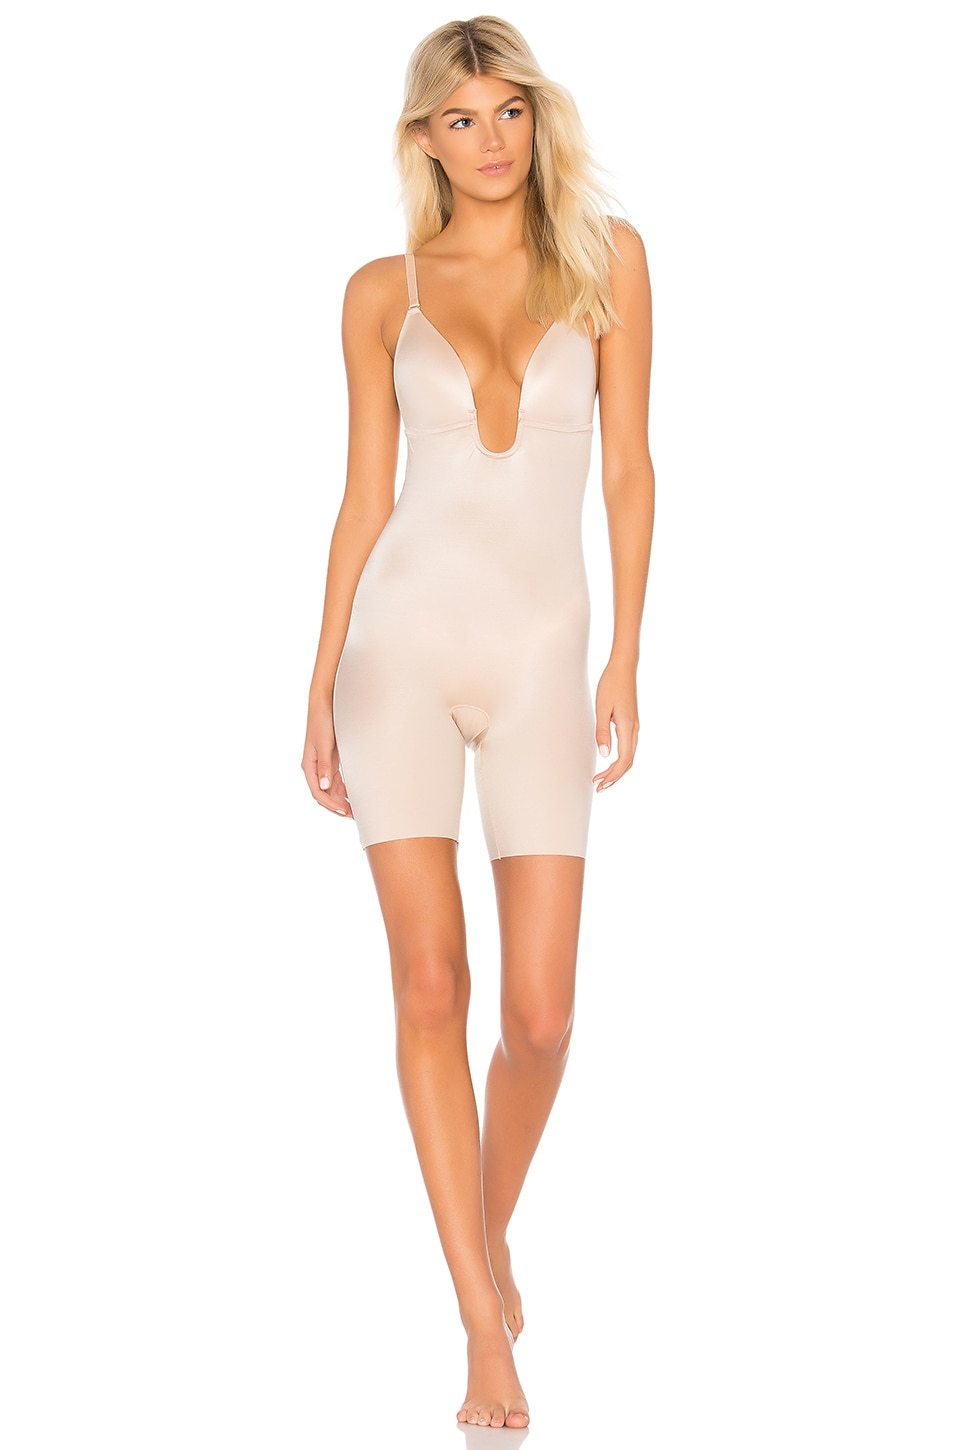 SPANX Suit Your Fancy Bodysuit in Champagne Beige